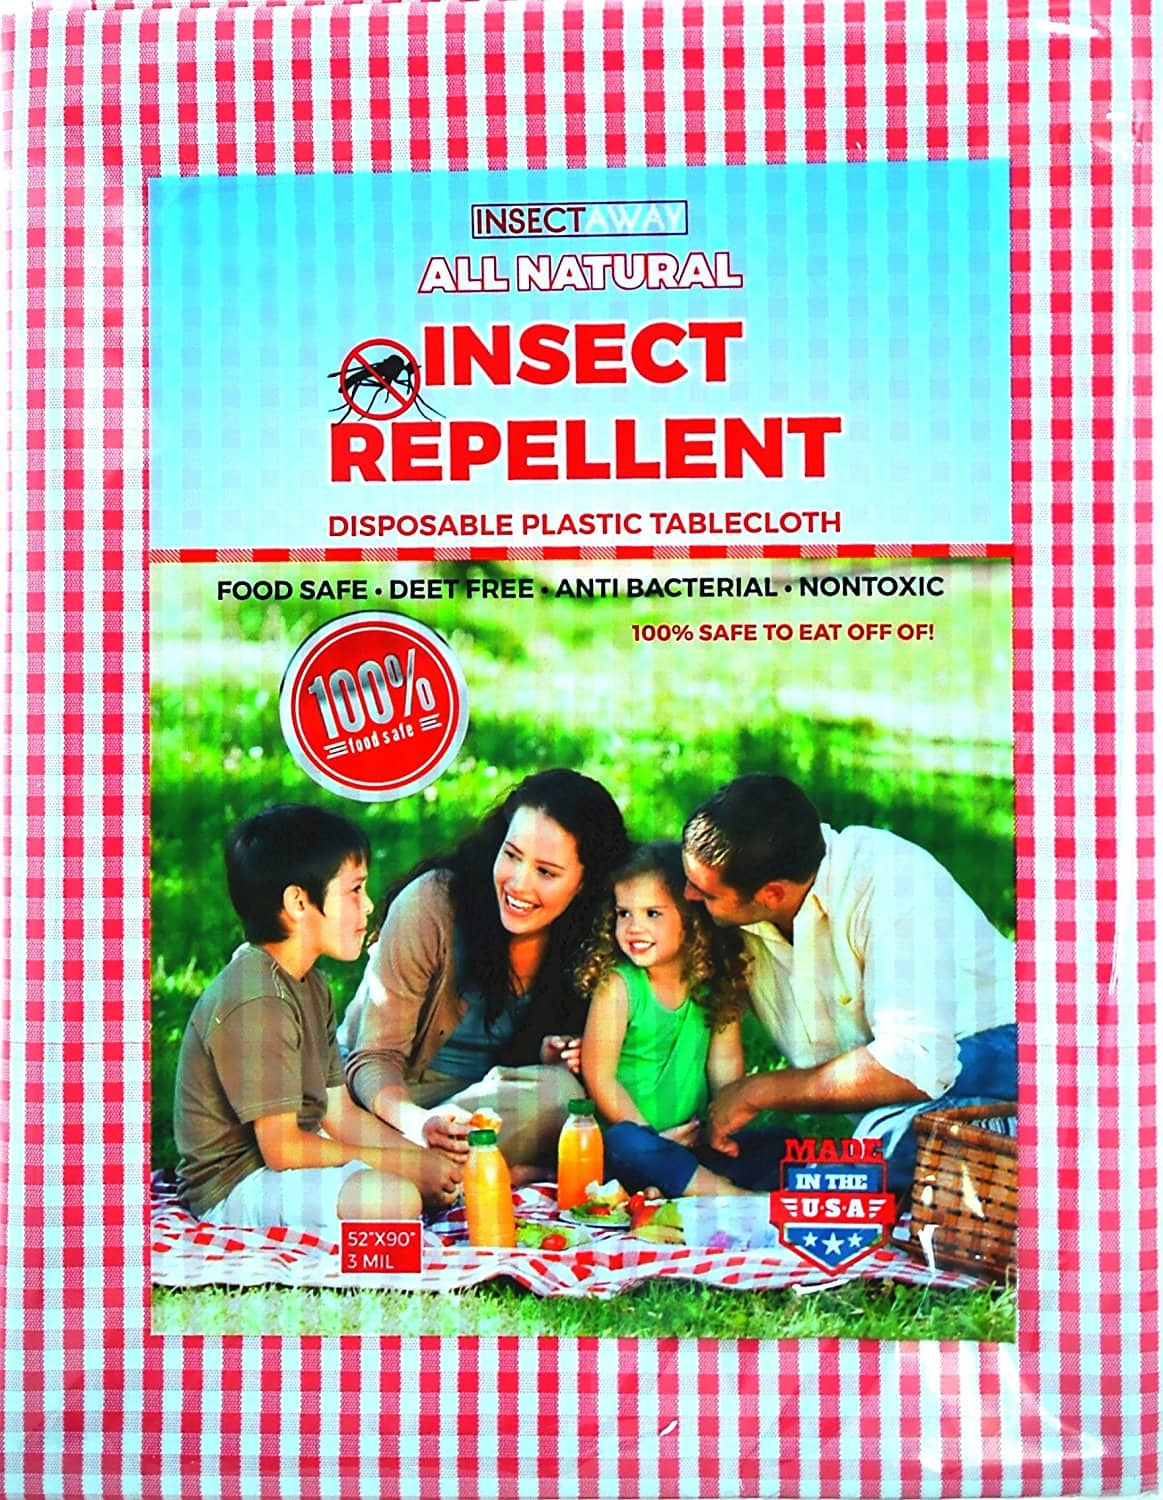 "(2 PACK) Insect Away All Natural Insect Repellent Tablecloth 52"" X 90"" Red and White Checkered $8.99 Free Shipping"